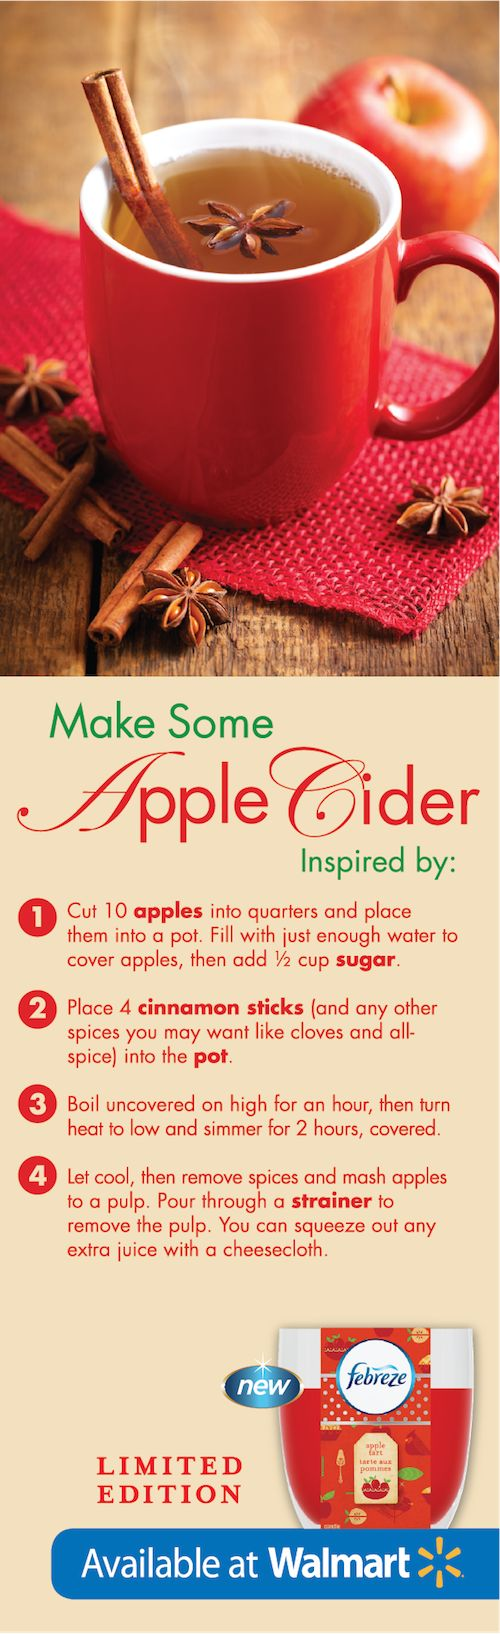 Is there anything better than warm apple cider during the holidays? #FebrezeHoliday